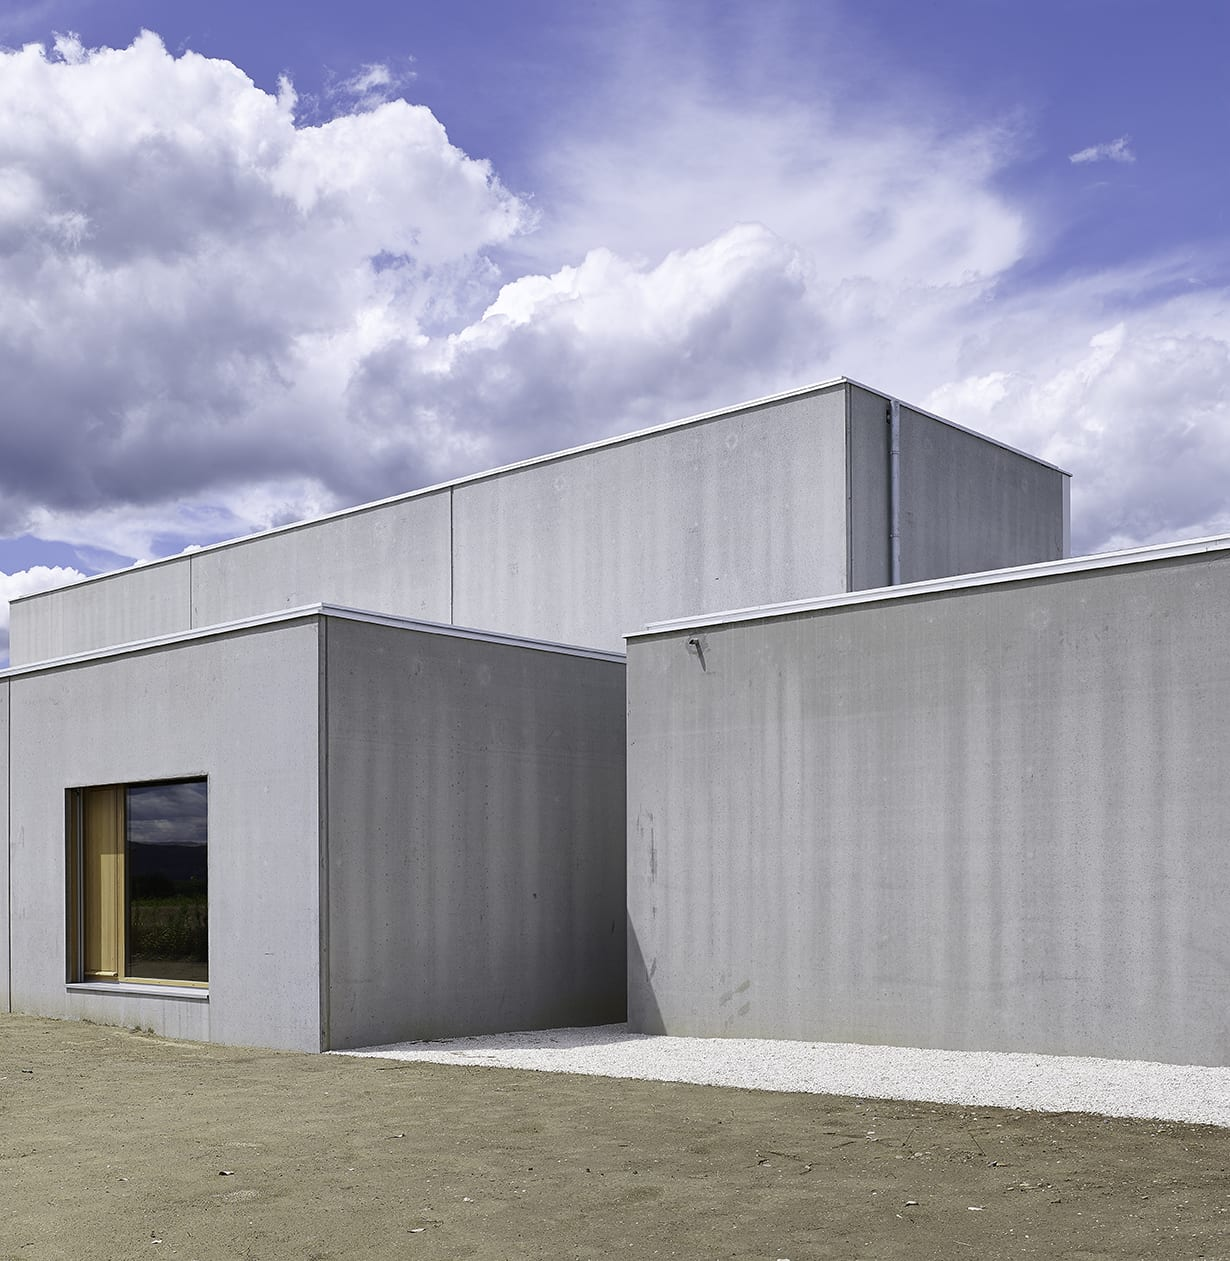 Maison Prefabrique En Beton a-mas, françois maisonnasse · office and showroom for fbi